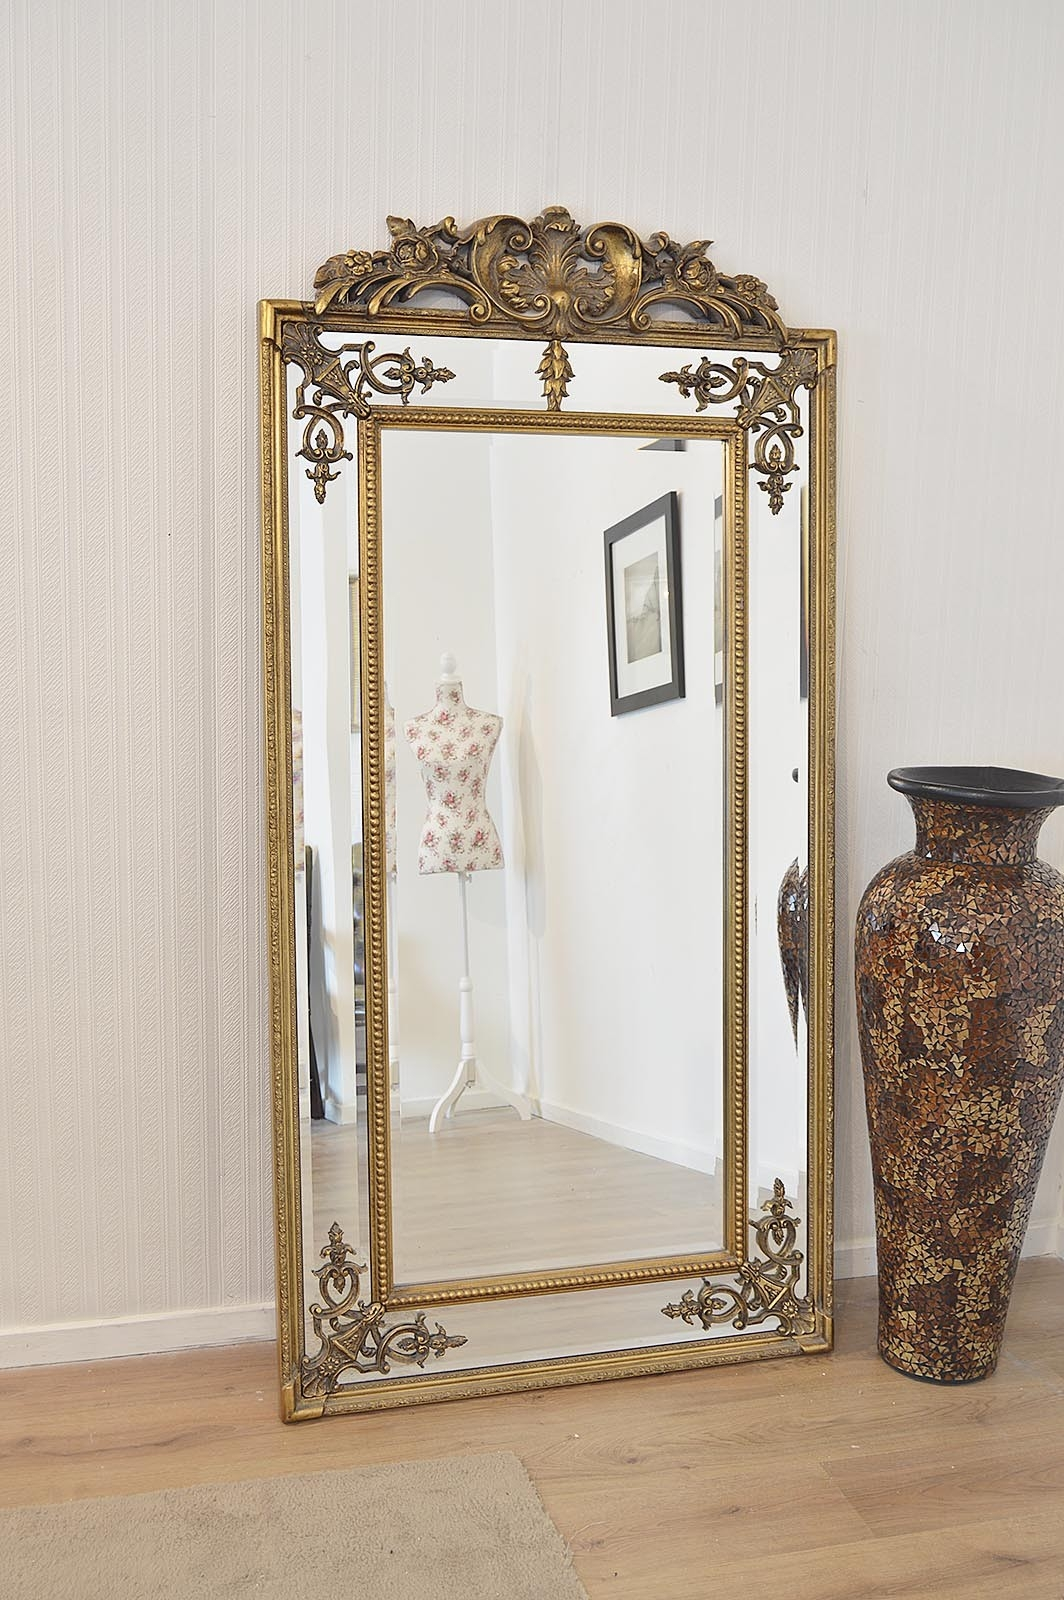 Large Gold Ornate Antique Design Wall Mounted Mirror New 6ft X 3ft For Ornate Antique Mirrors (Image 6 of 14)